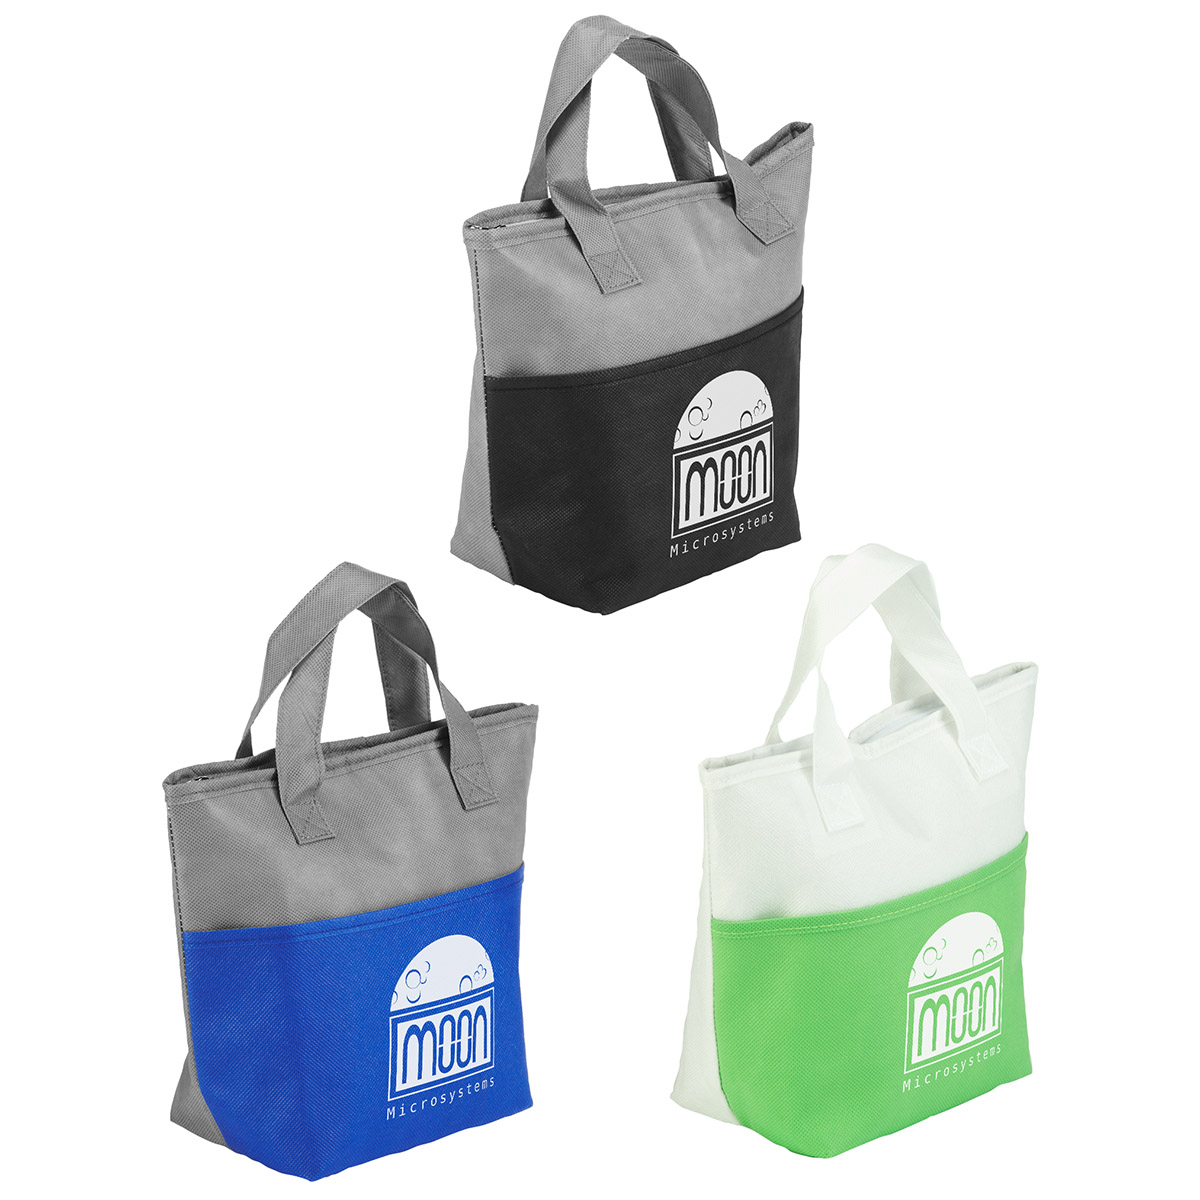 Santa Ana Insulated Snack Tote Bag, WBA-SA10 - 1 Colour Imprint